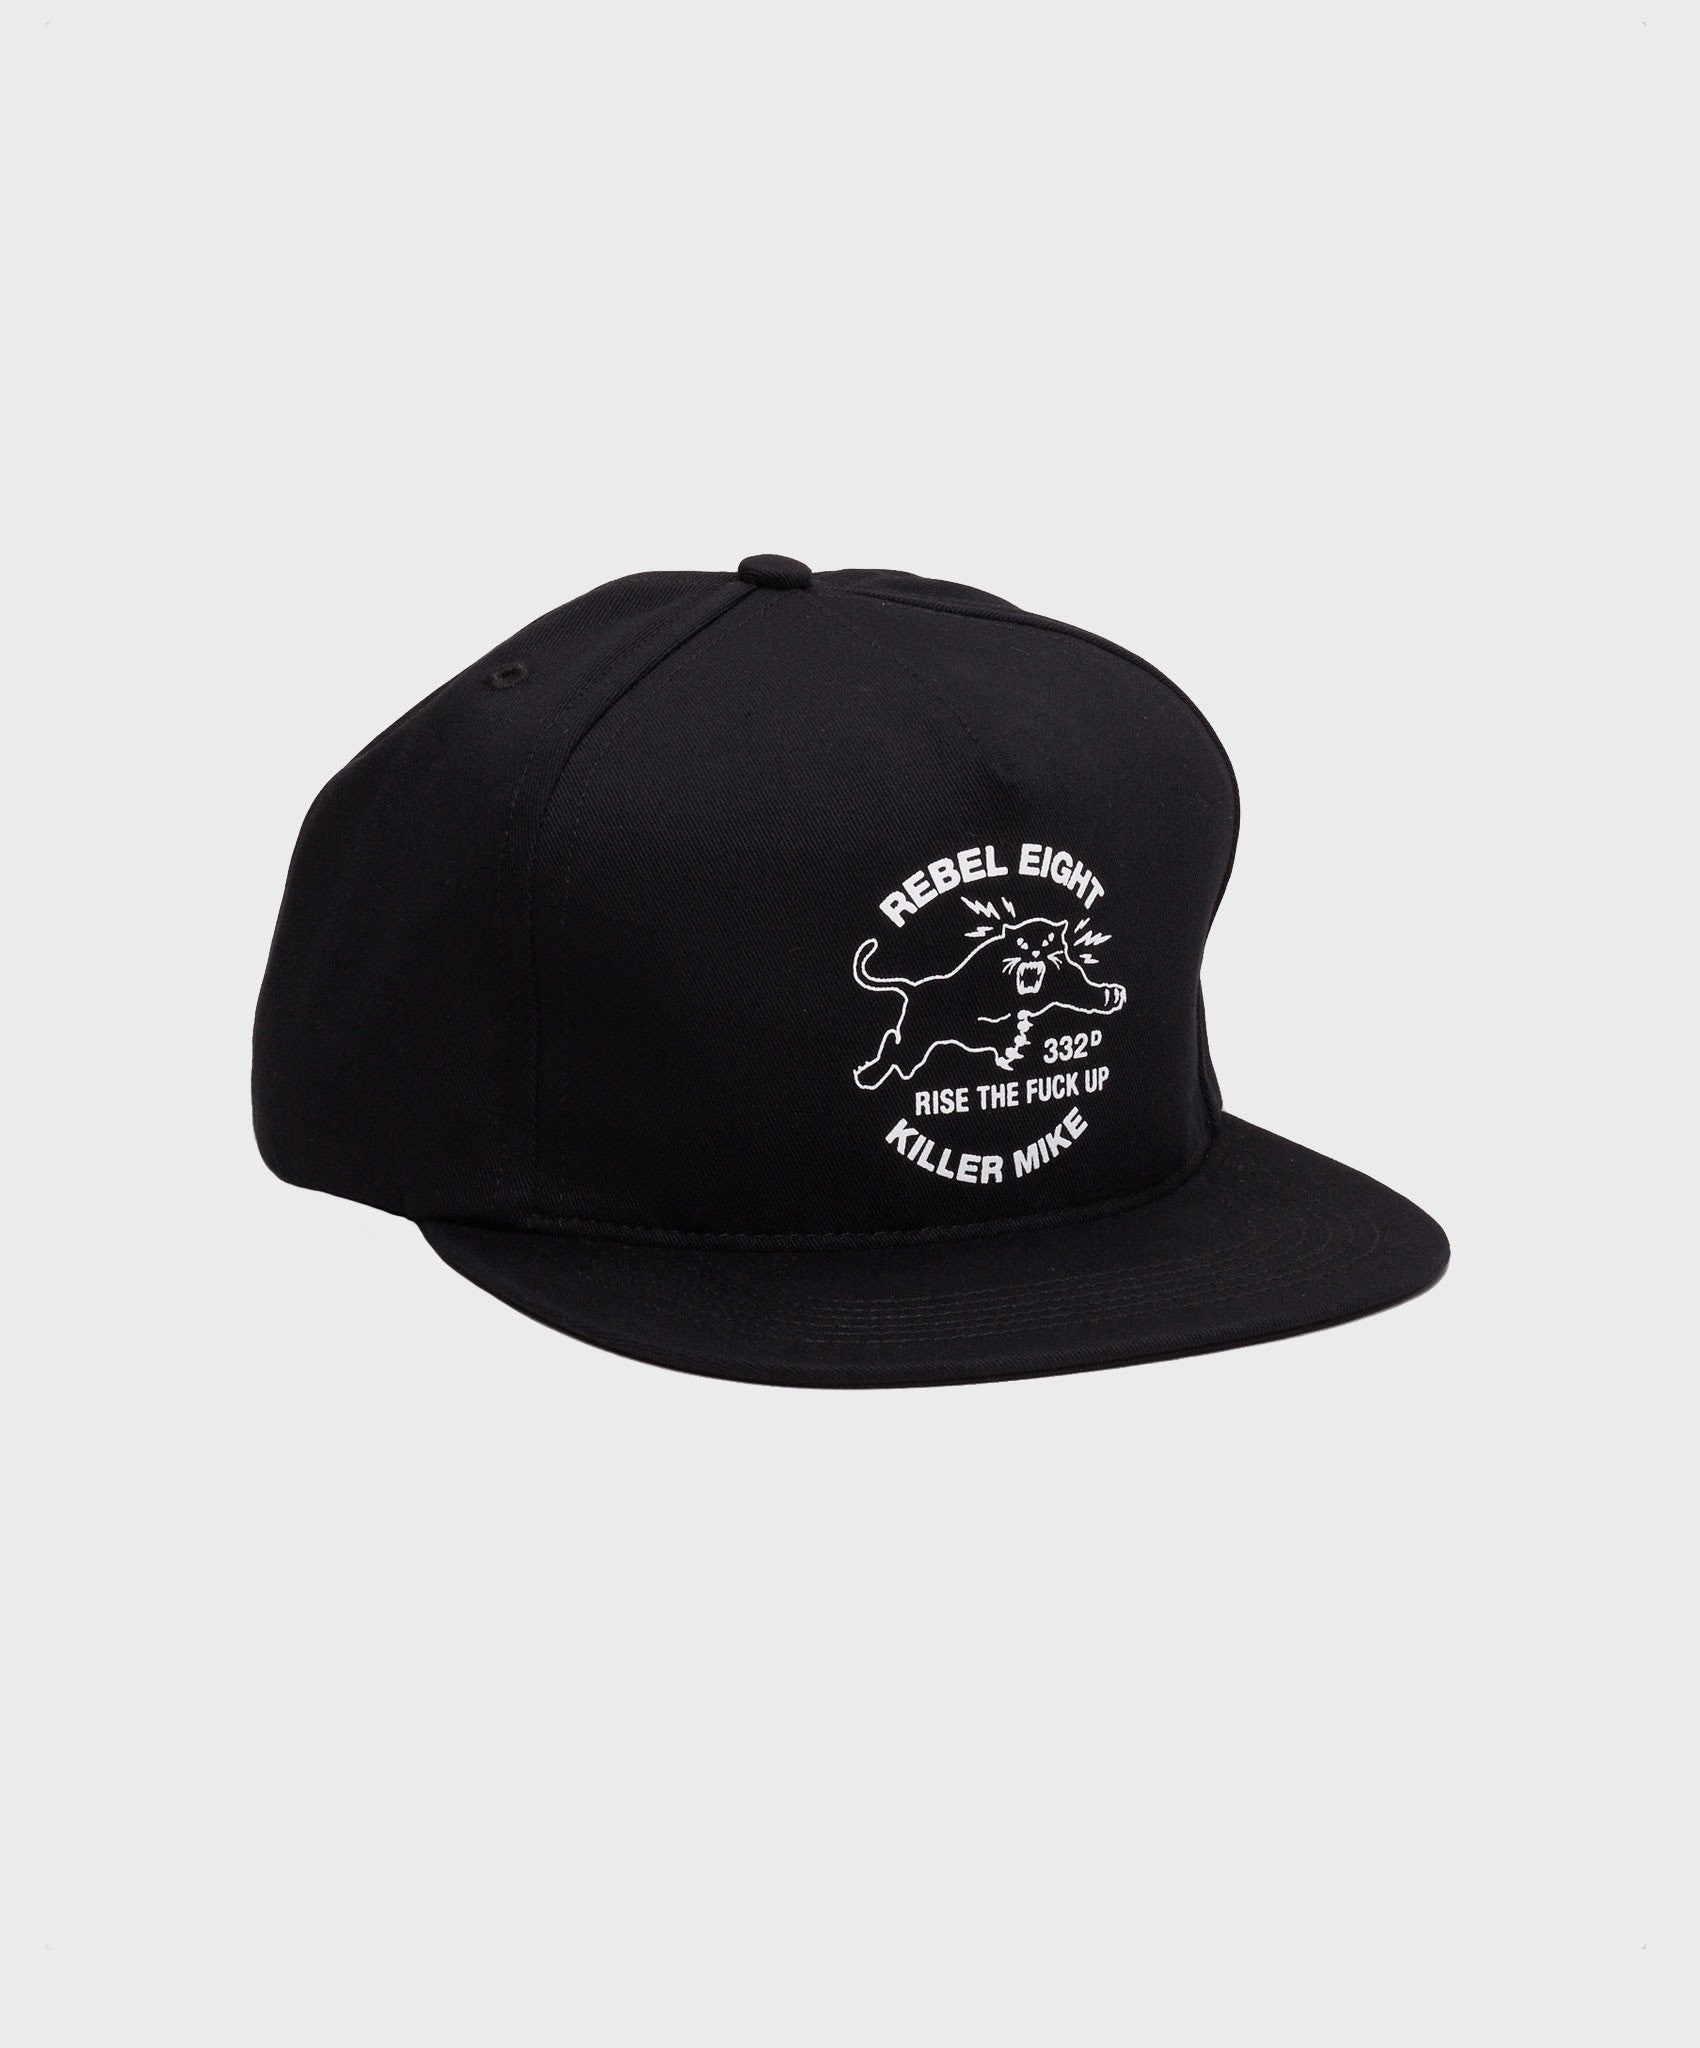 REBEL8 x Killer Mike - Regiment Snapback Hat, Black - The Giant Peach